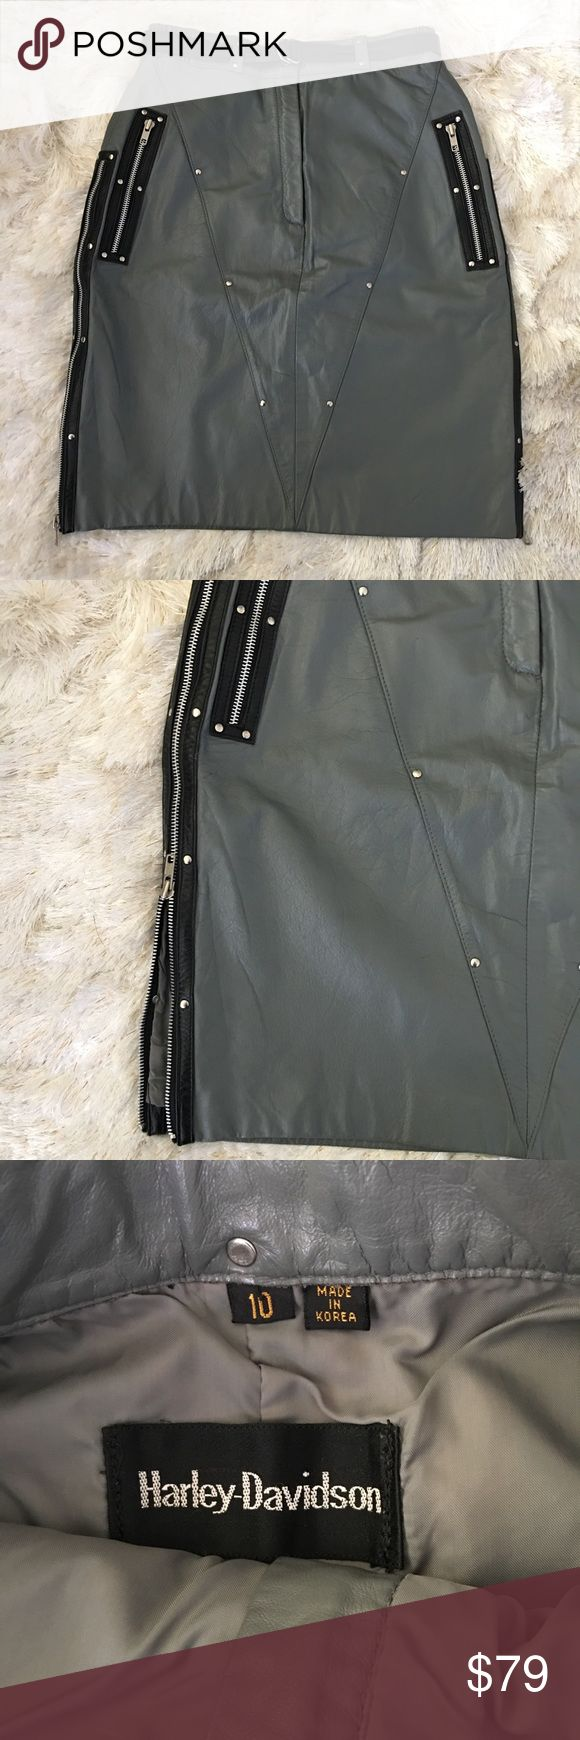 """Vintage Leather Harley Davidson Pencil Skirt Cute vintage leather skirt. Label reads size 10.  By Harley Davidson. Grey with black belt, silver studs, side zip pockets, and side zip details. You can unzip the sides for a vented look. Unique and cool piece. Leather with polyester lining. Measurements when laid flat: waist 27"""" with some stretch, hips 37"""", length 22"""", width at hem when zipped 38"""".  Zip fly with snap closure. V seam detail in front and back. Cute with a ruffled blouse, band tee…"""